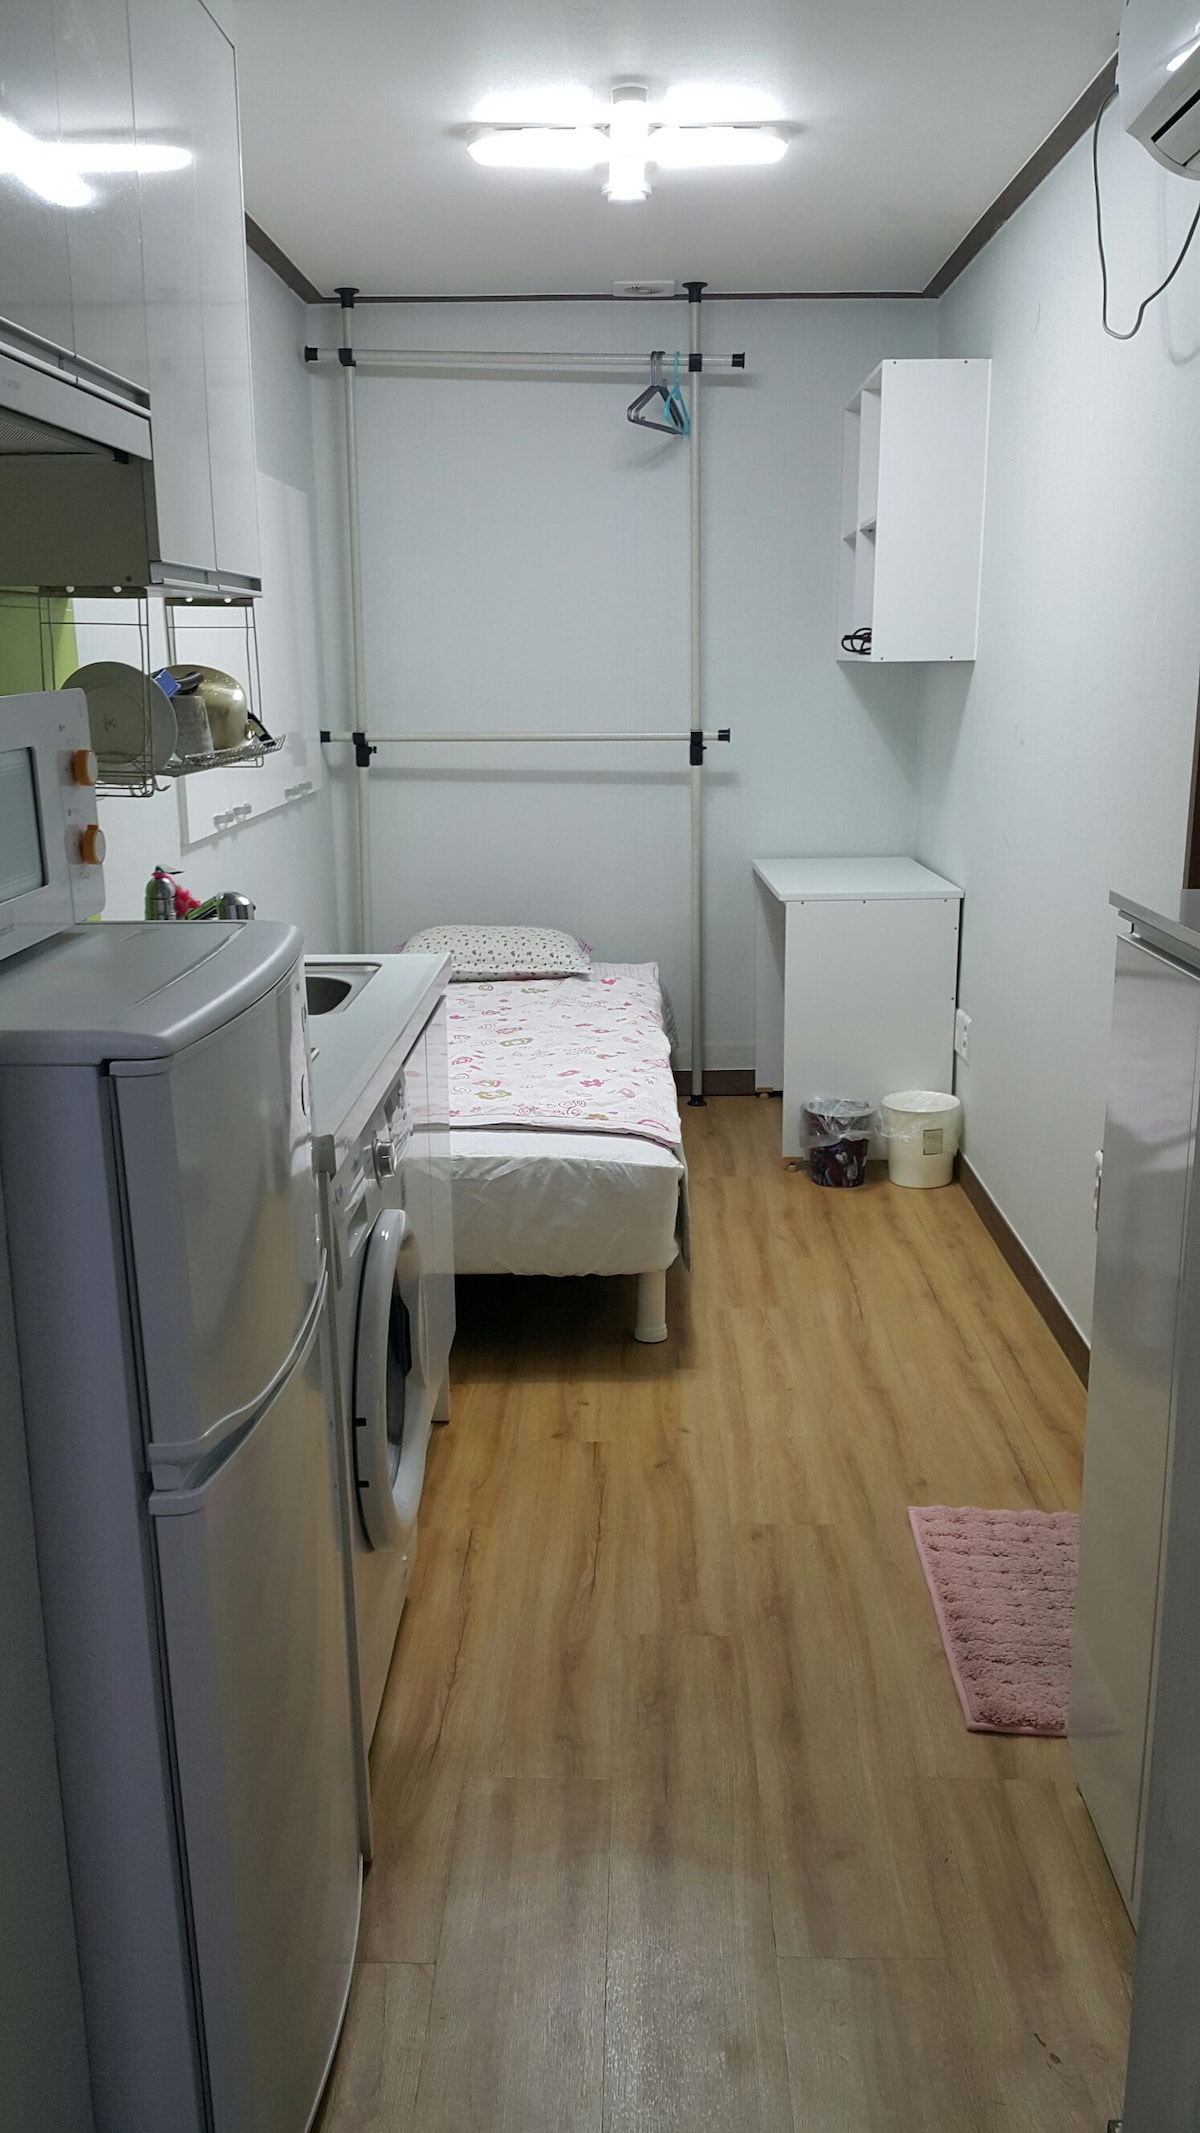 Small and cozy studio 2min with hanyang university apartments for rent in seongdong gu seoul south korea